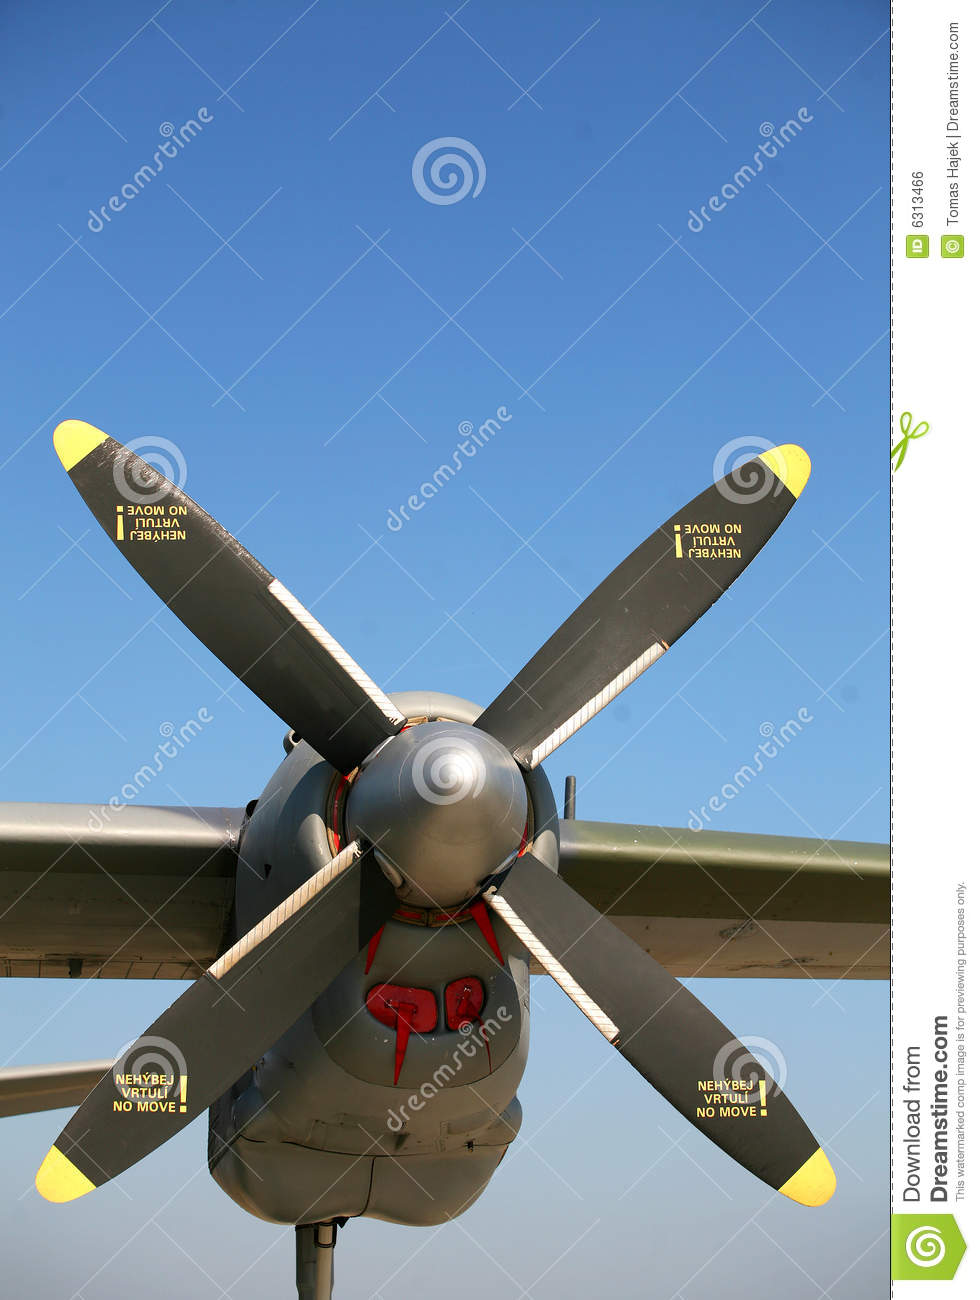 Airplane Propeller Royalty Free Stock Image - Image: 6313466